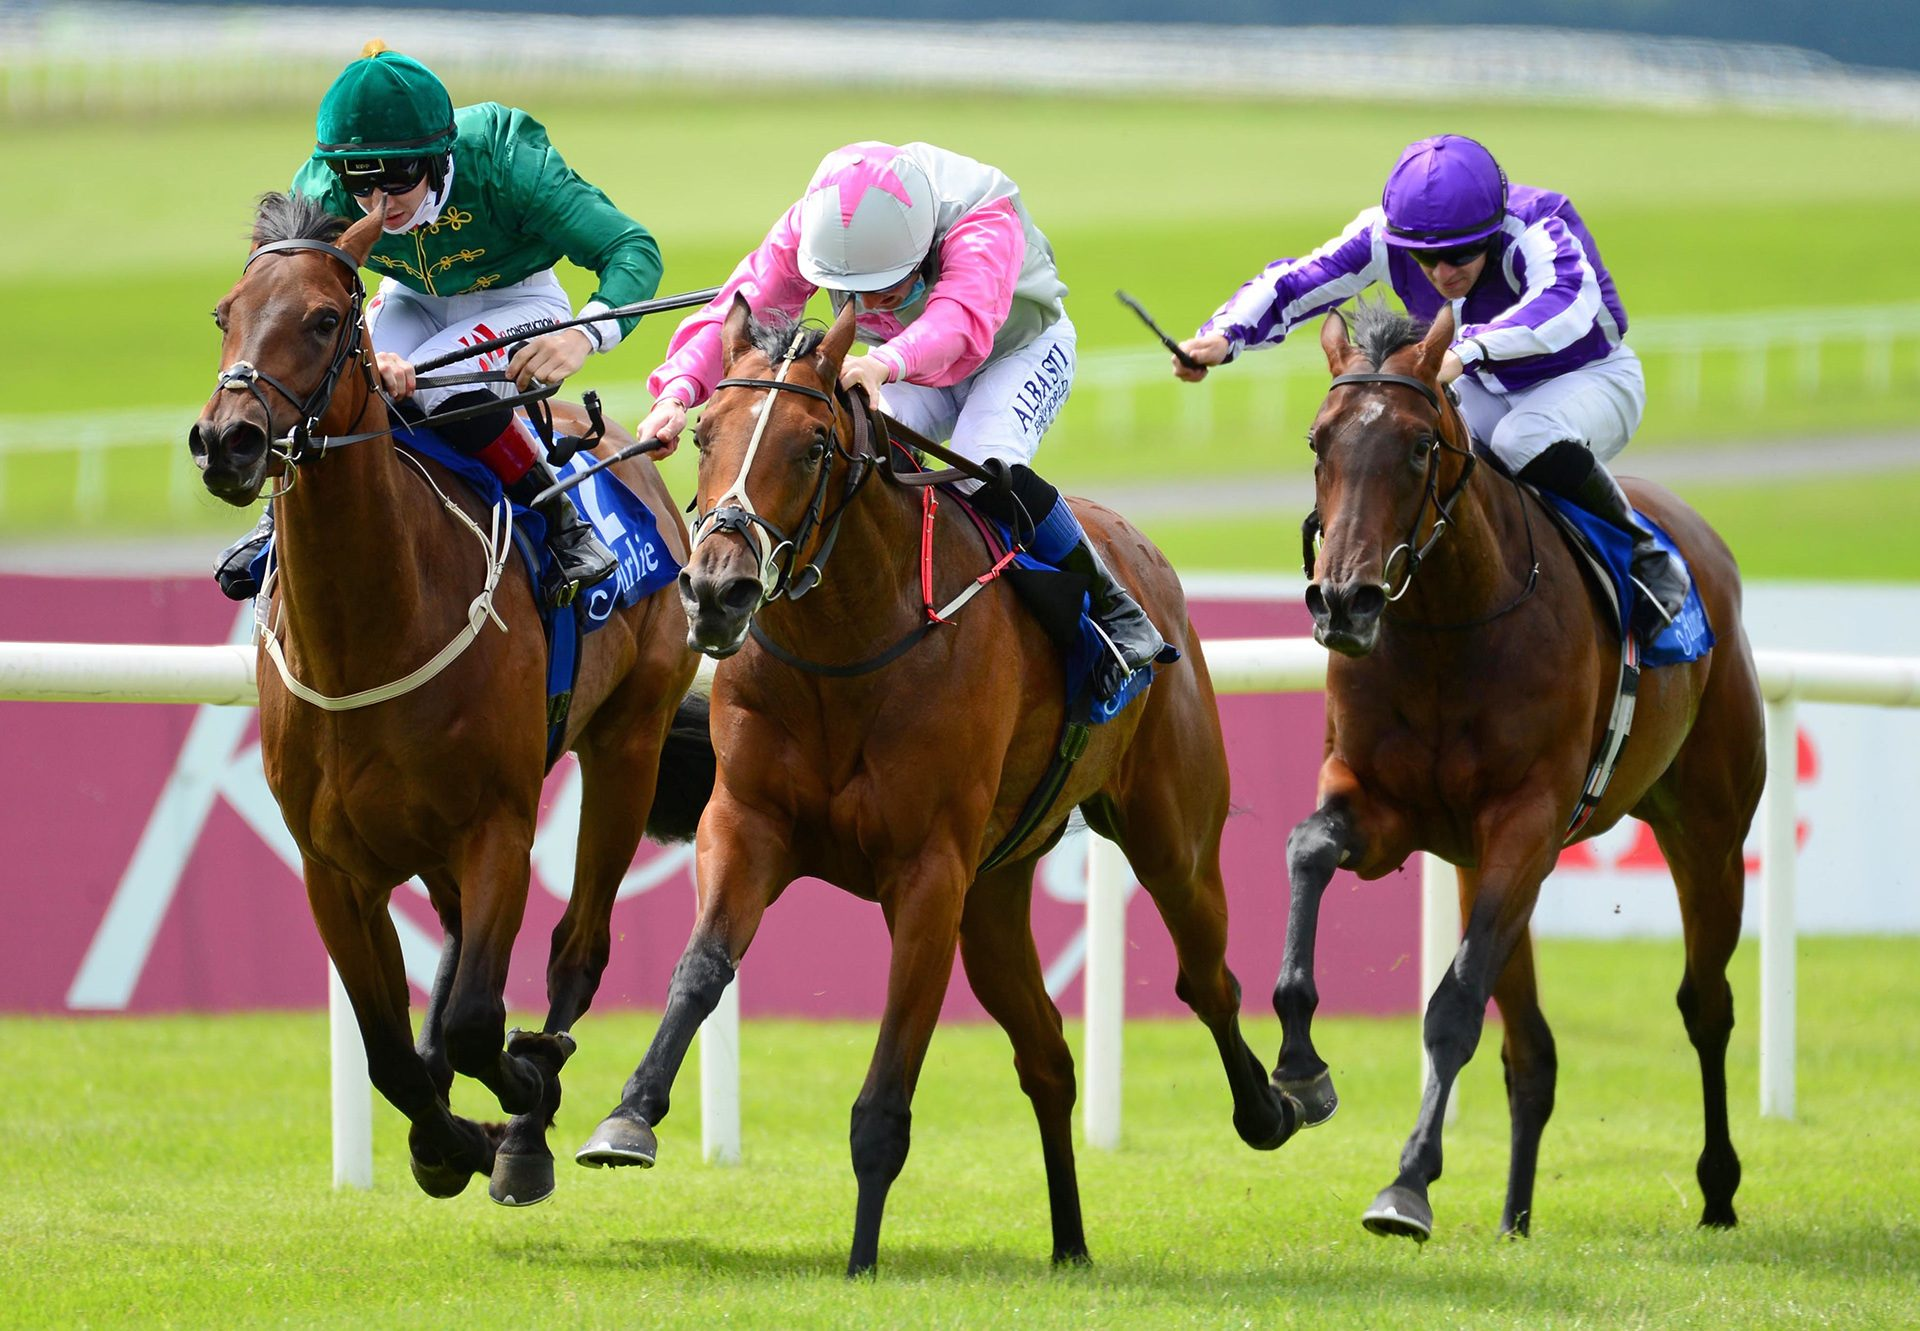 Aloha Star (Starspangledbanner) winning the Gr.2 Airlie Stud Stakes at the Curragh